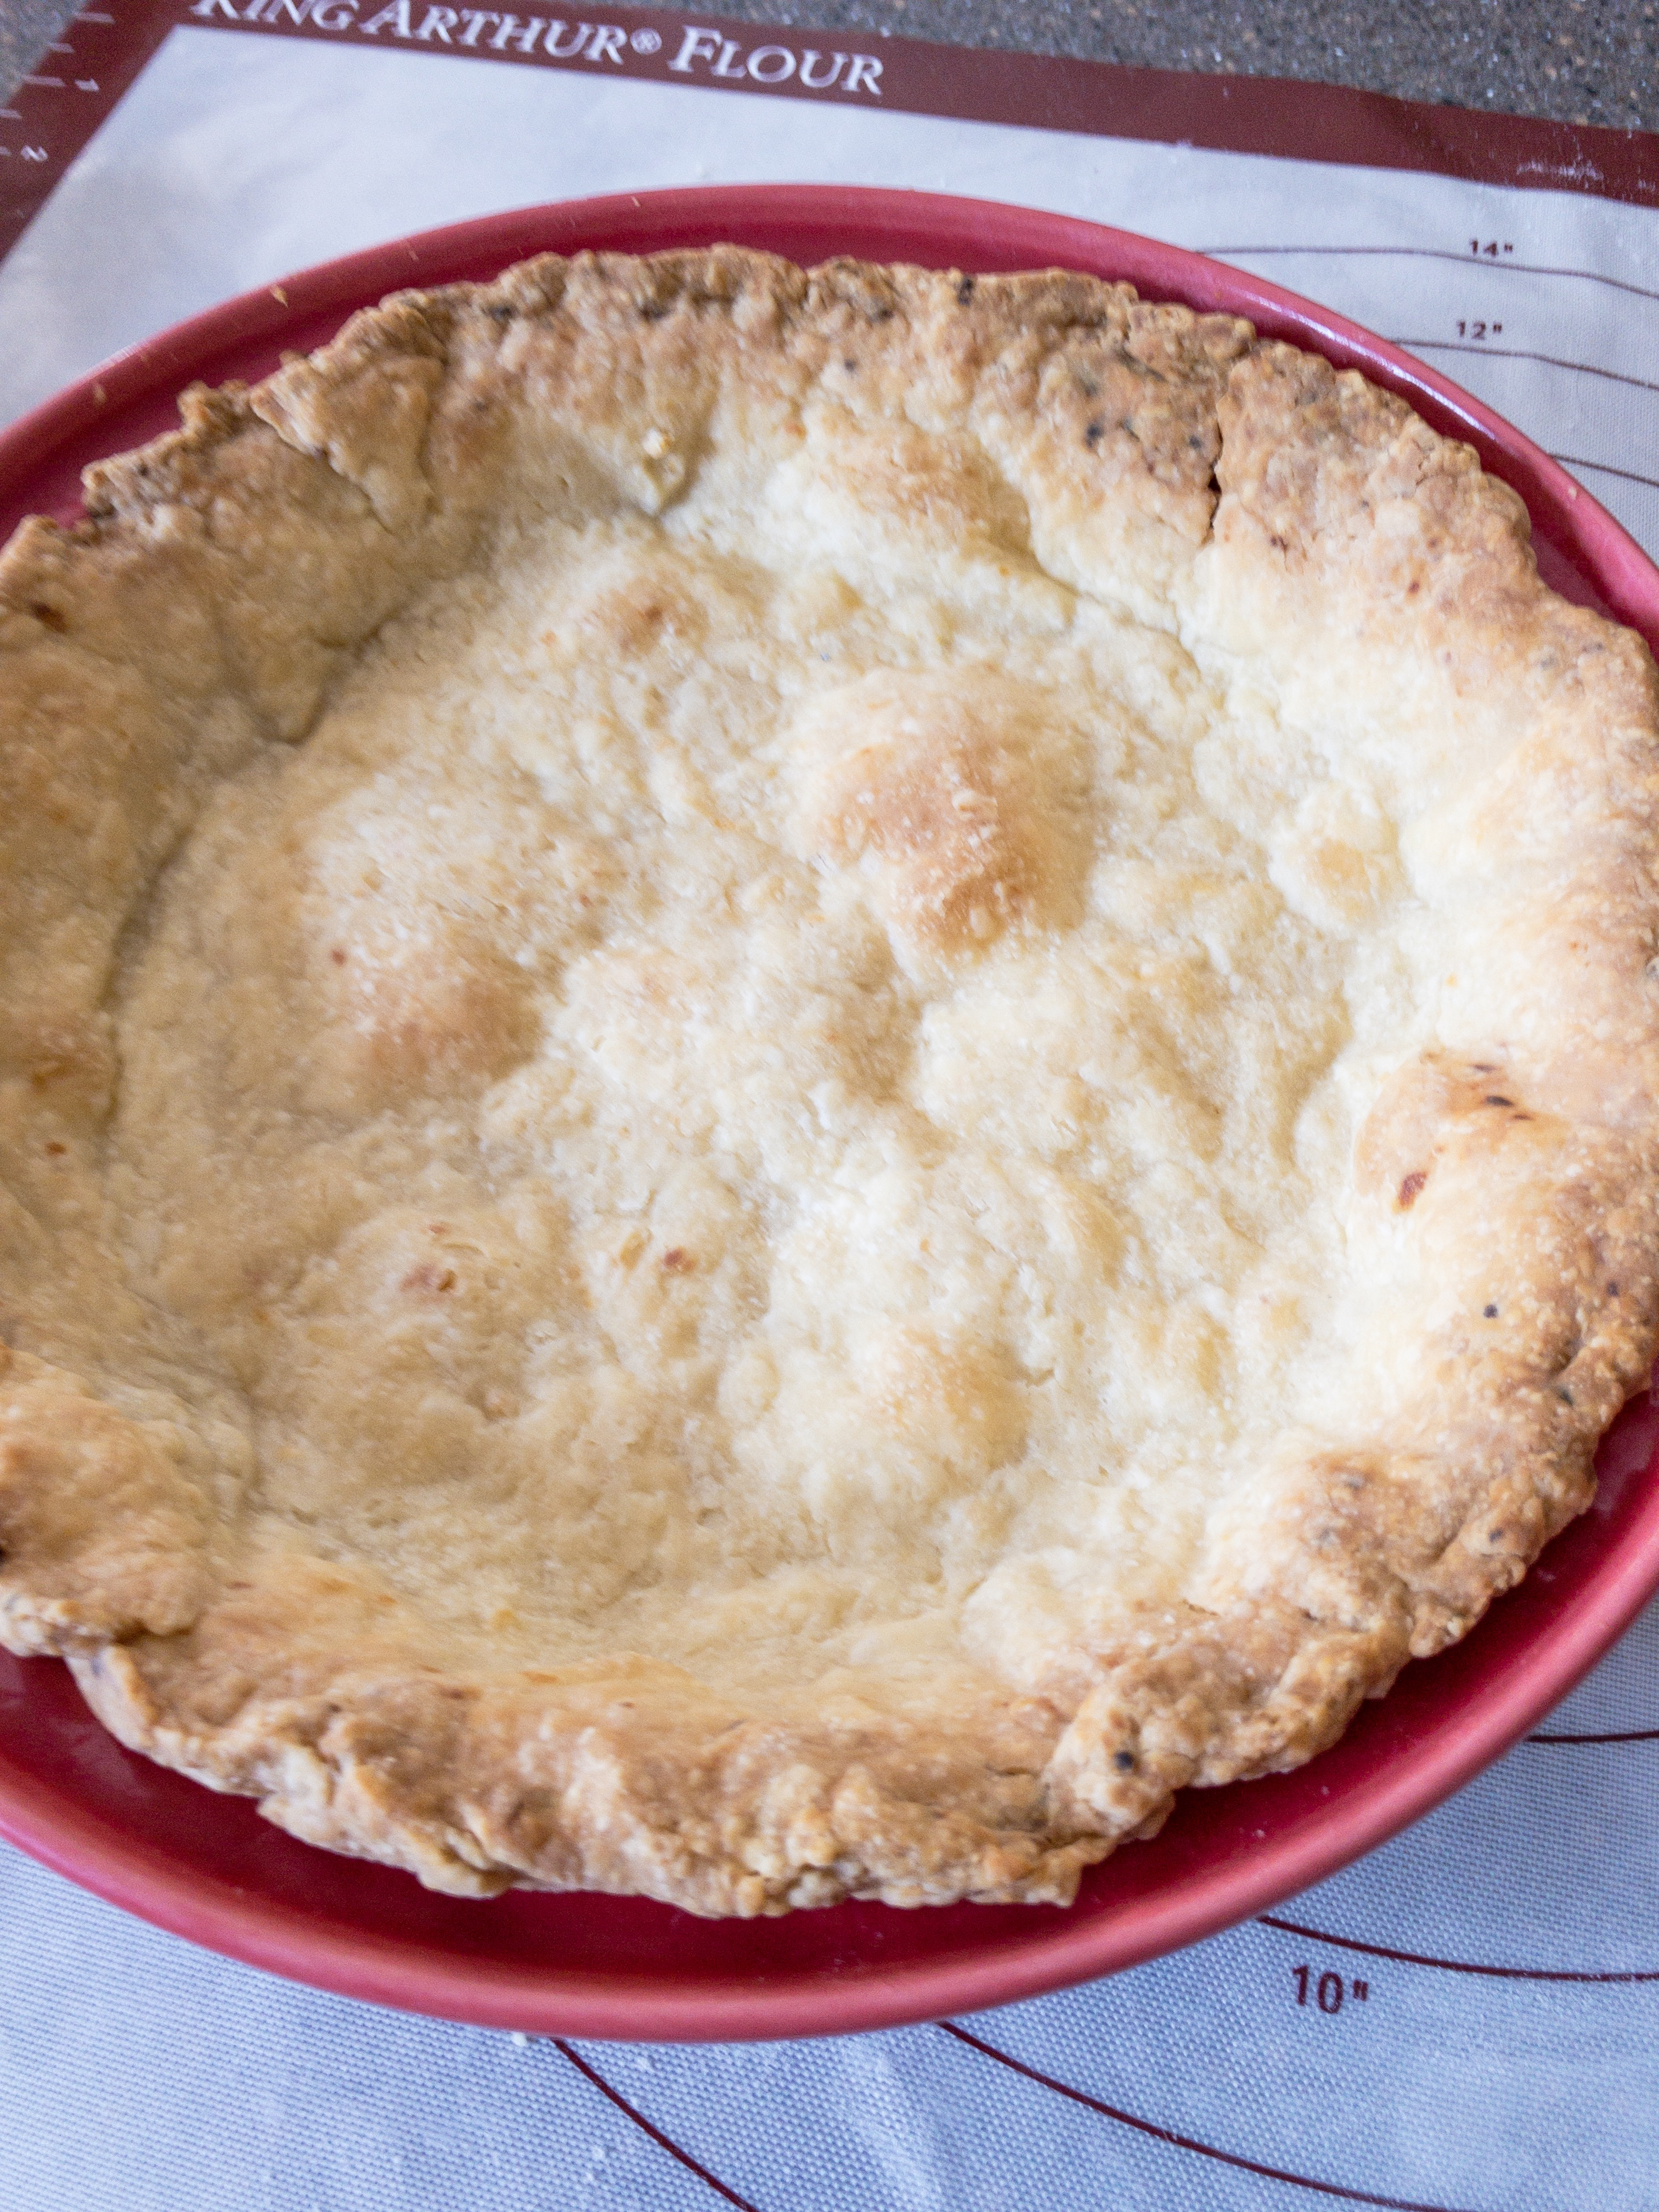 baked pie crust without chilling first